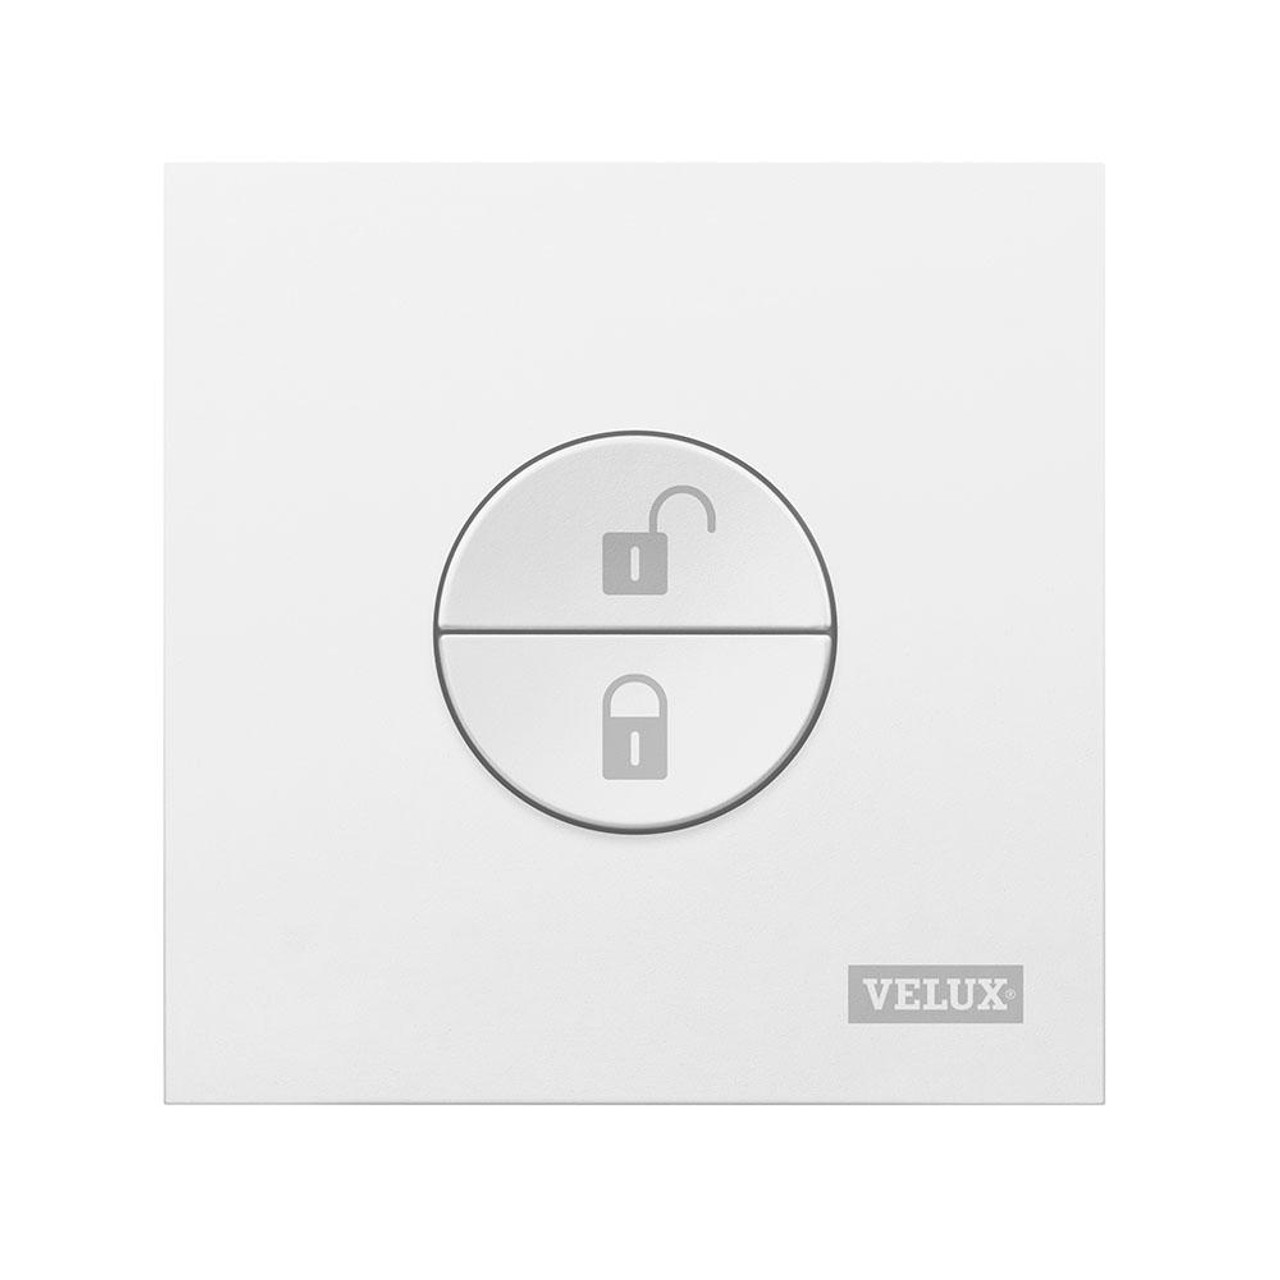 Velux ACTIVE Departure Switch on